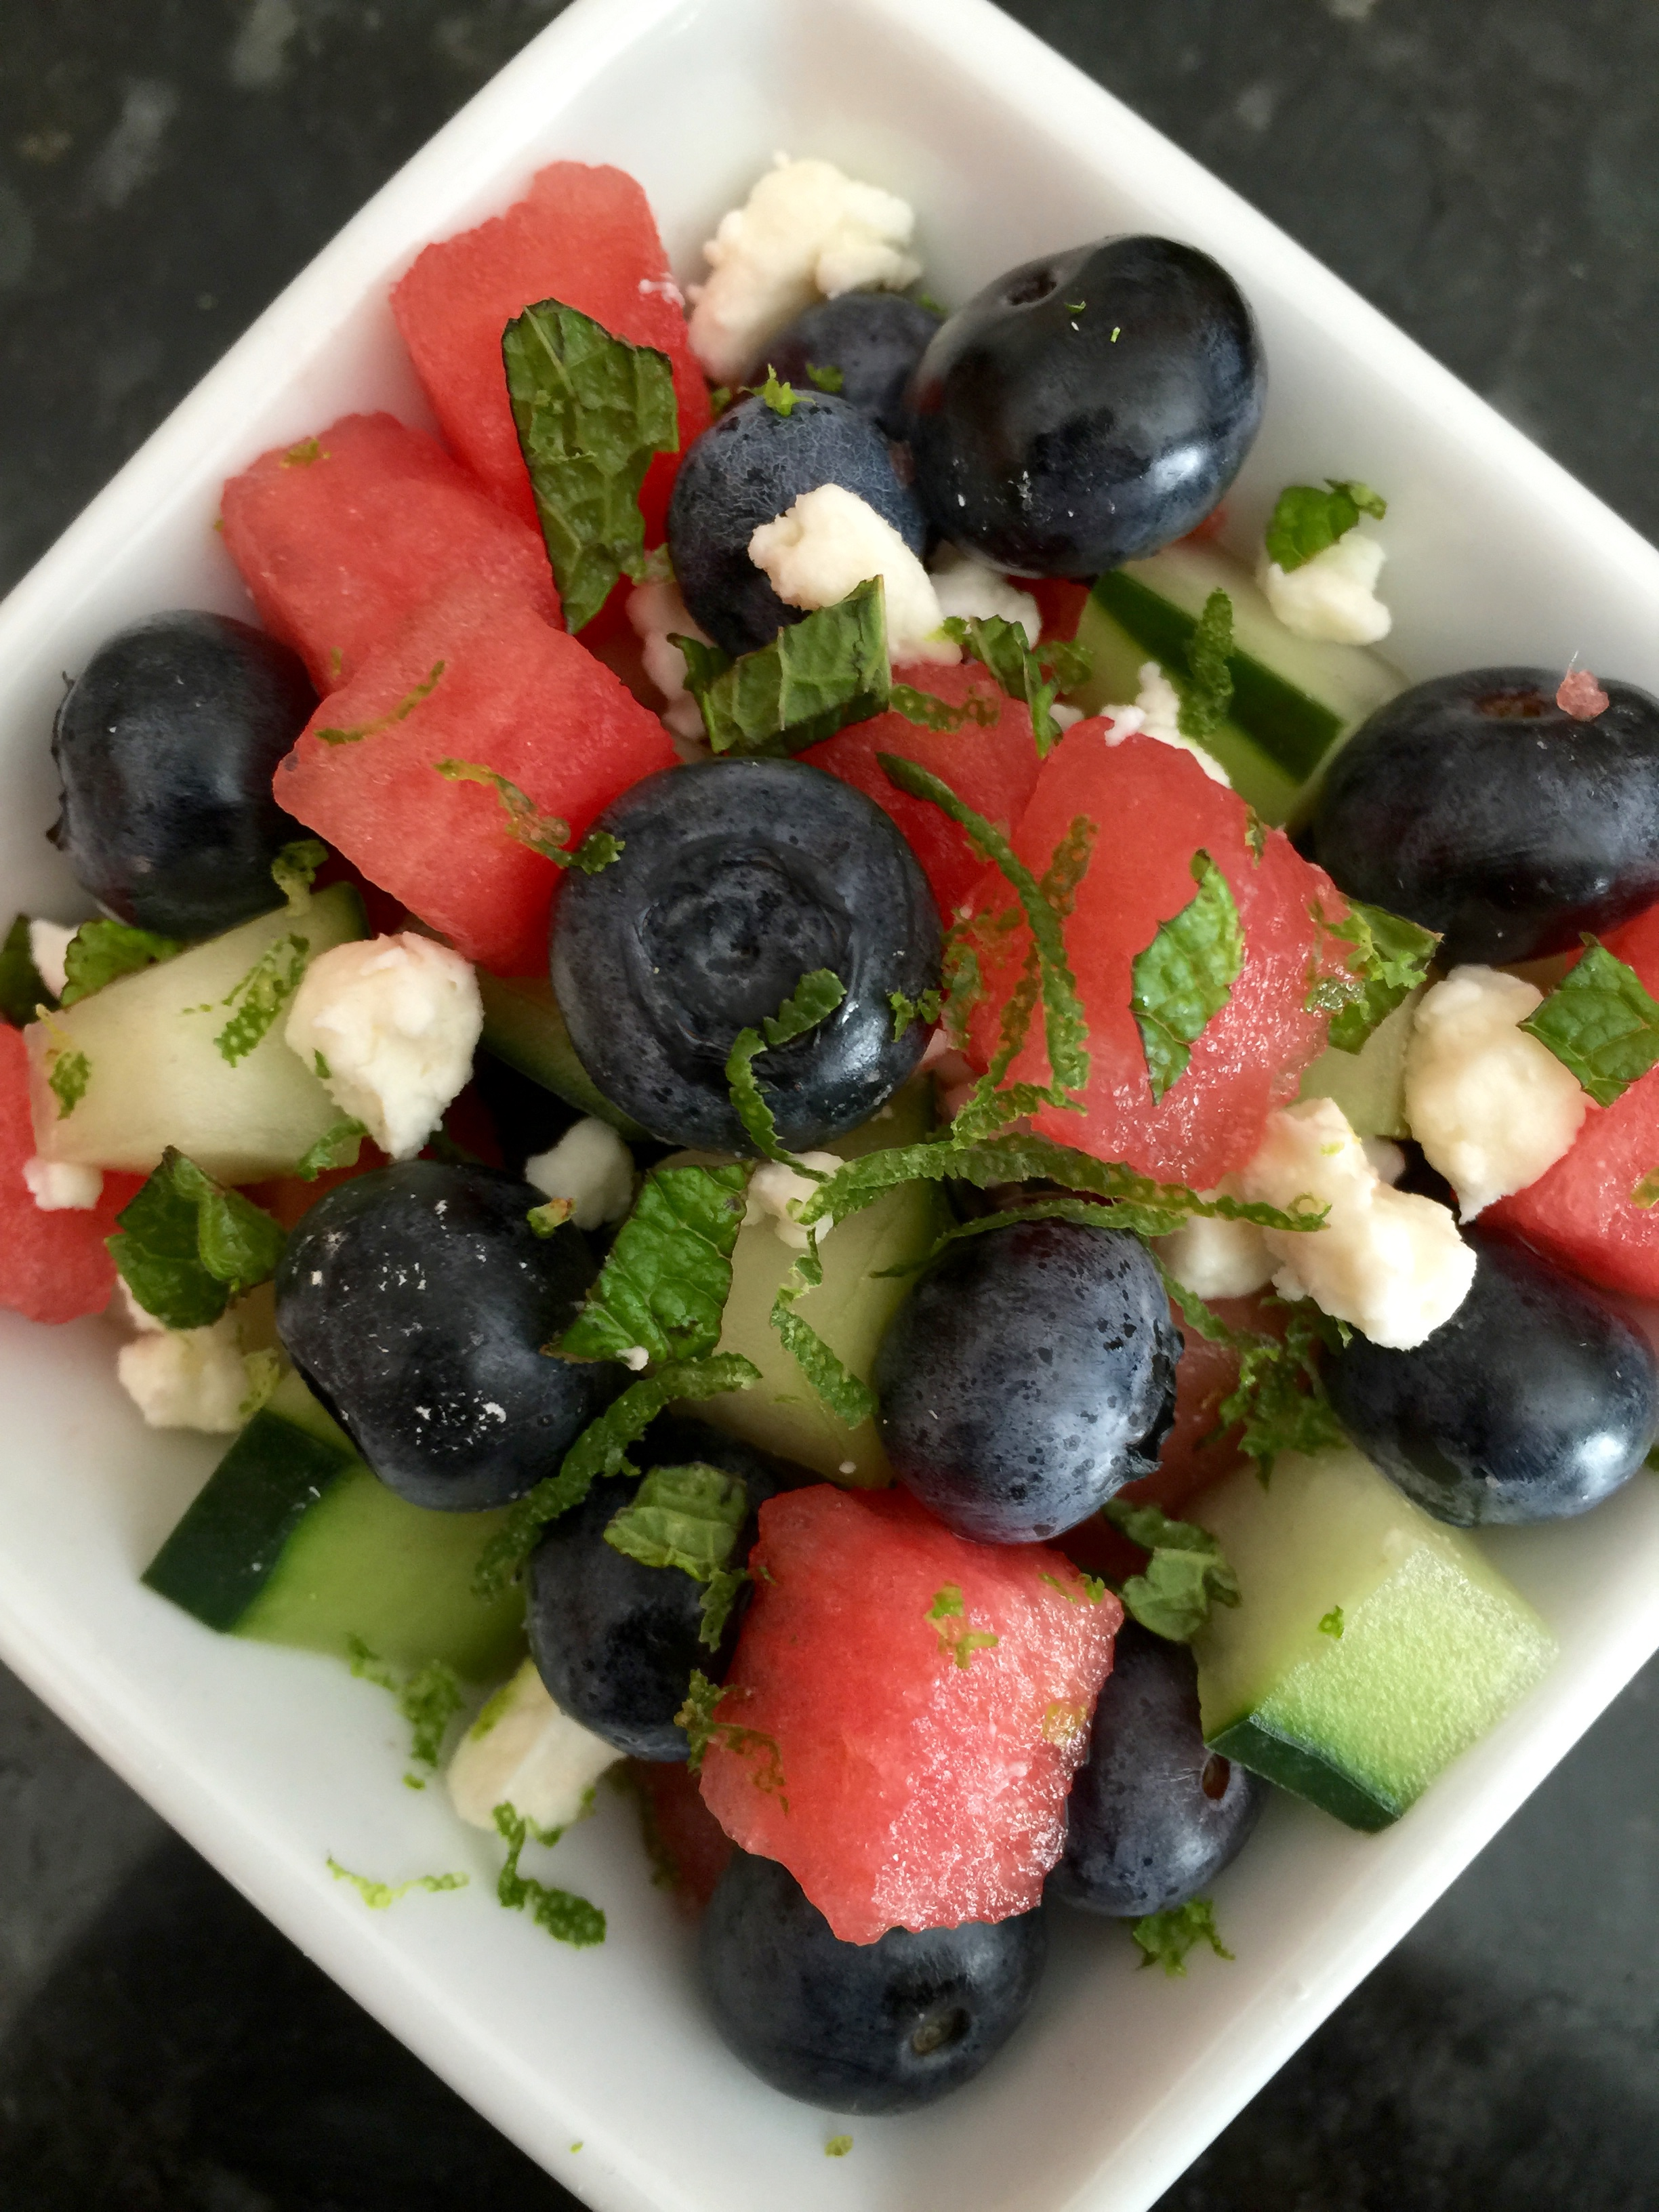 Watermelon, Cucumber and Blueberry Salad